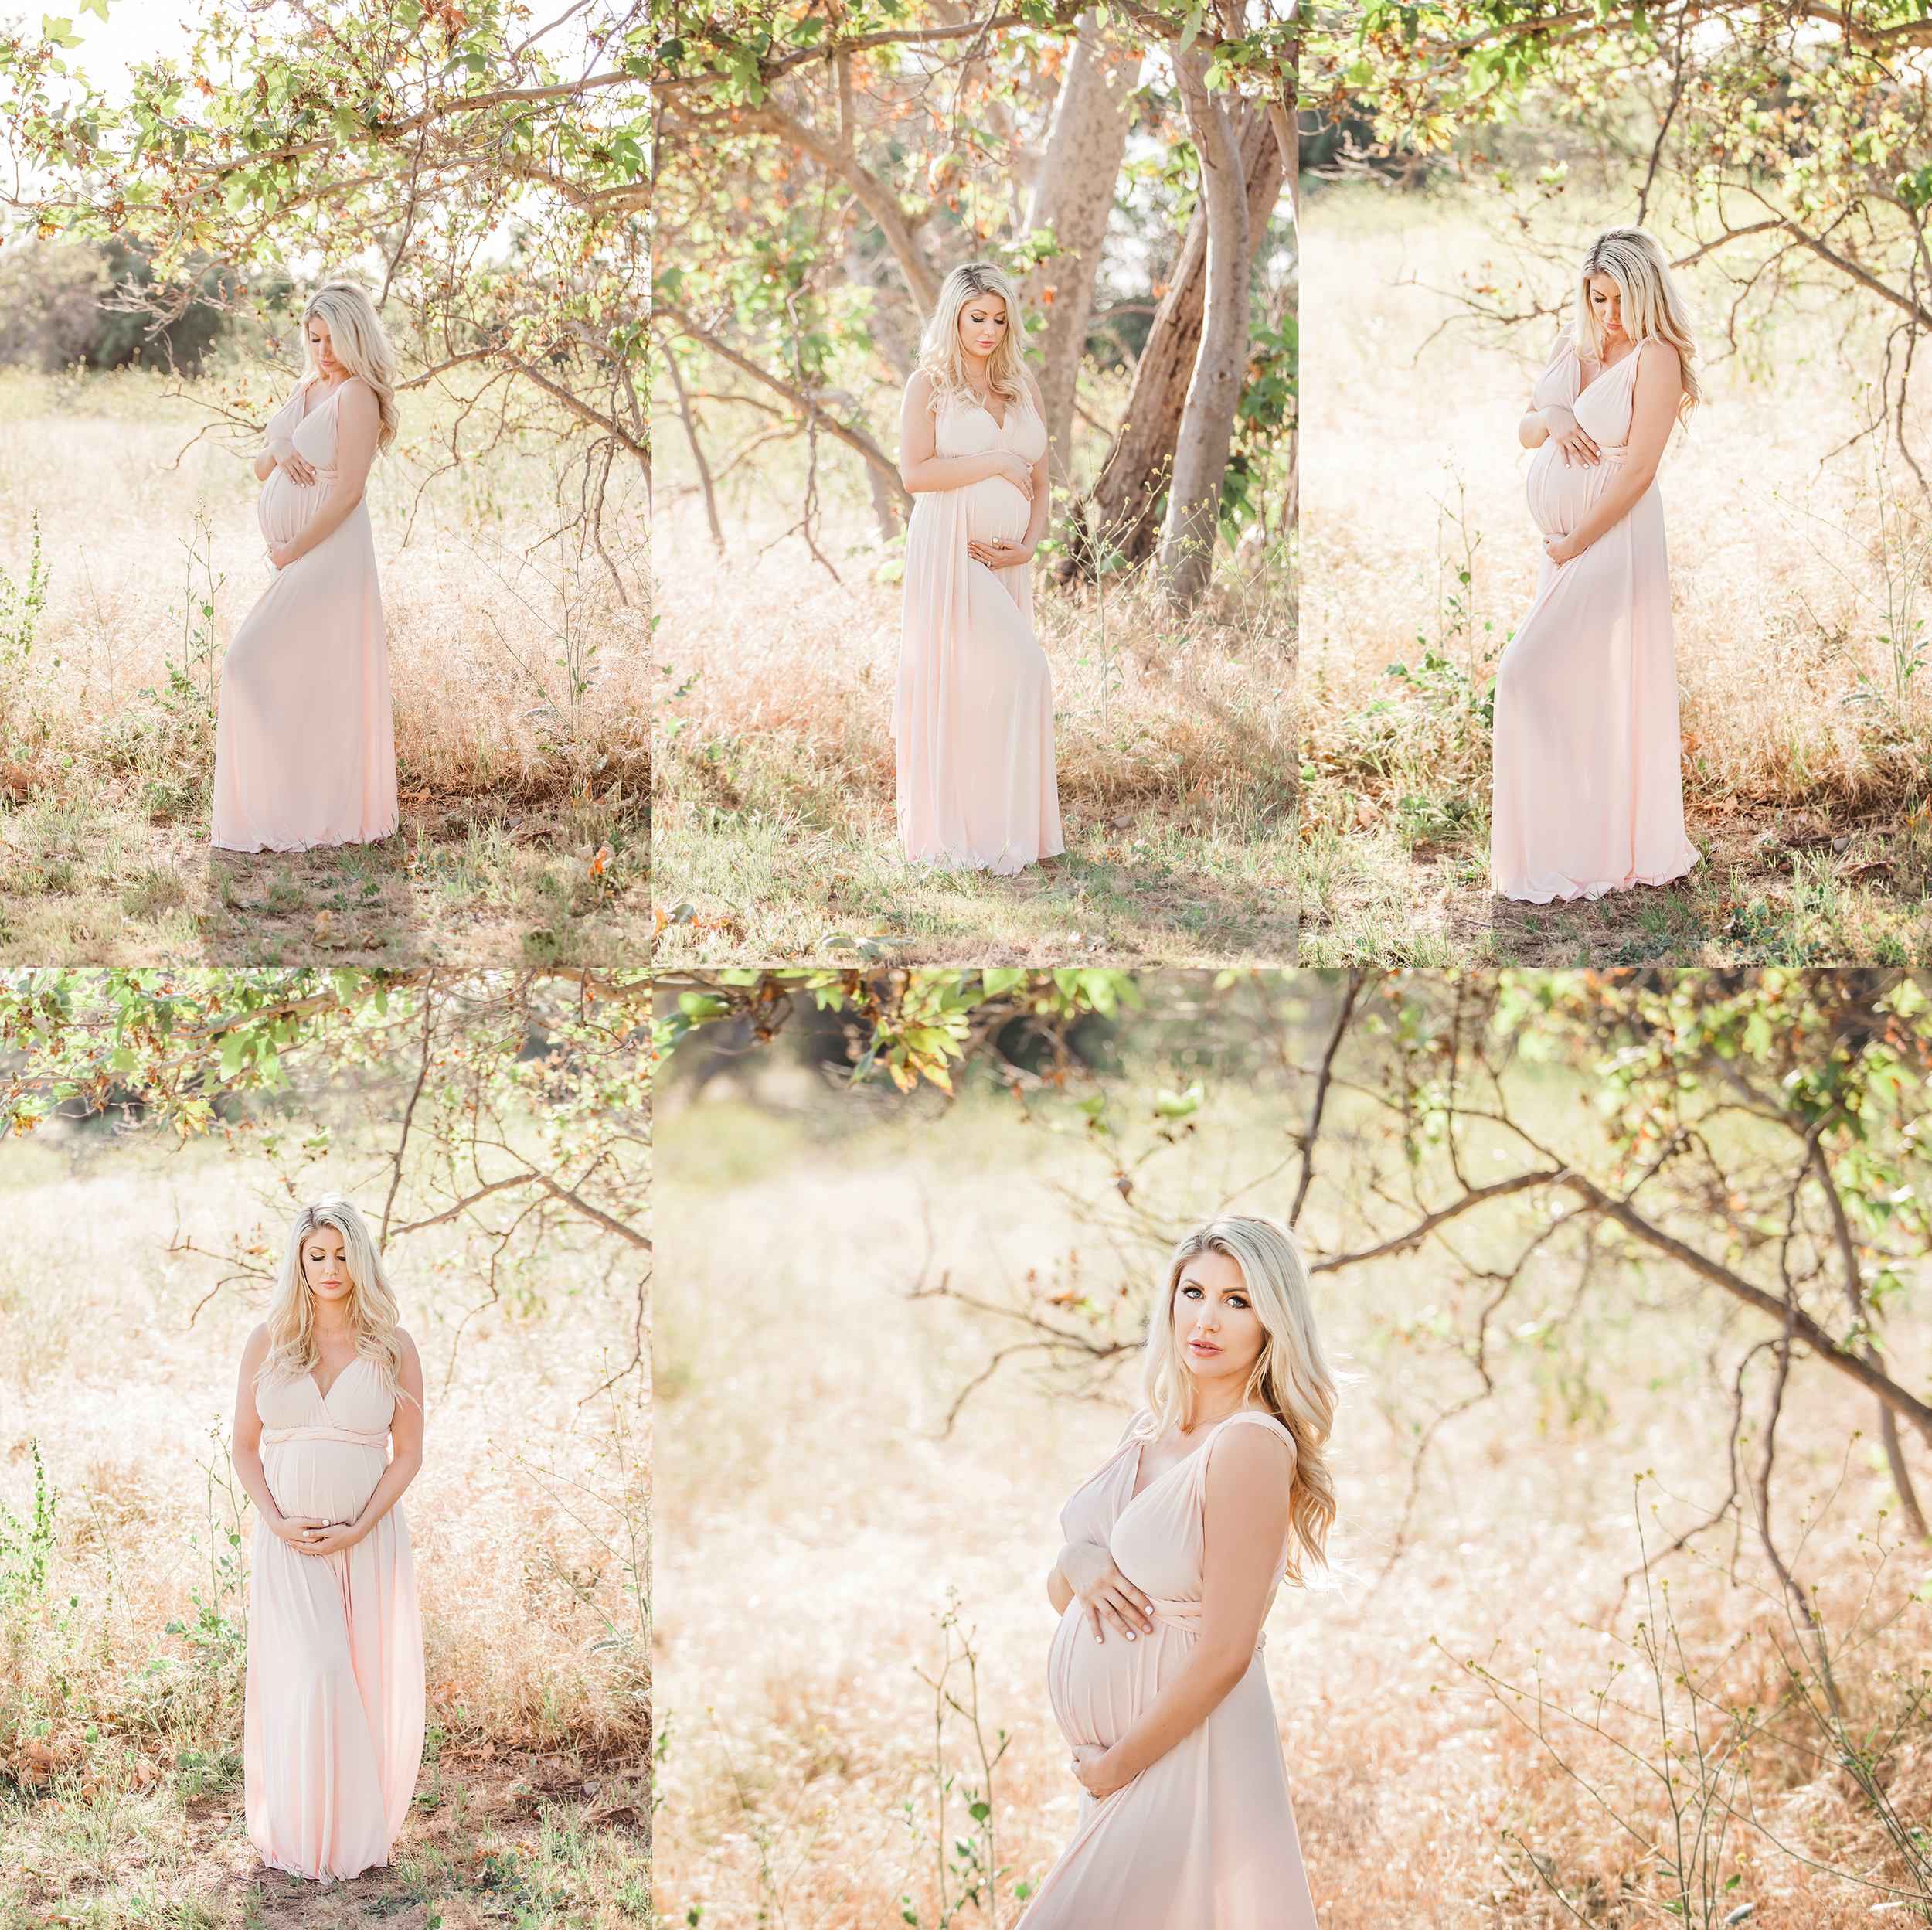 New Wave Photography. Maternity Photographer. Oahu Photographer. Fmaily. Maternity. Oahu. Hawaii.jpg